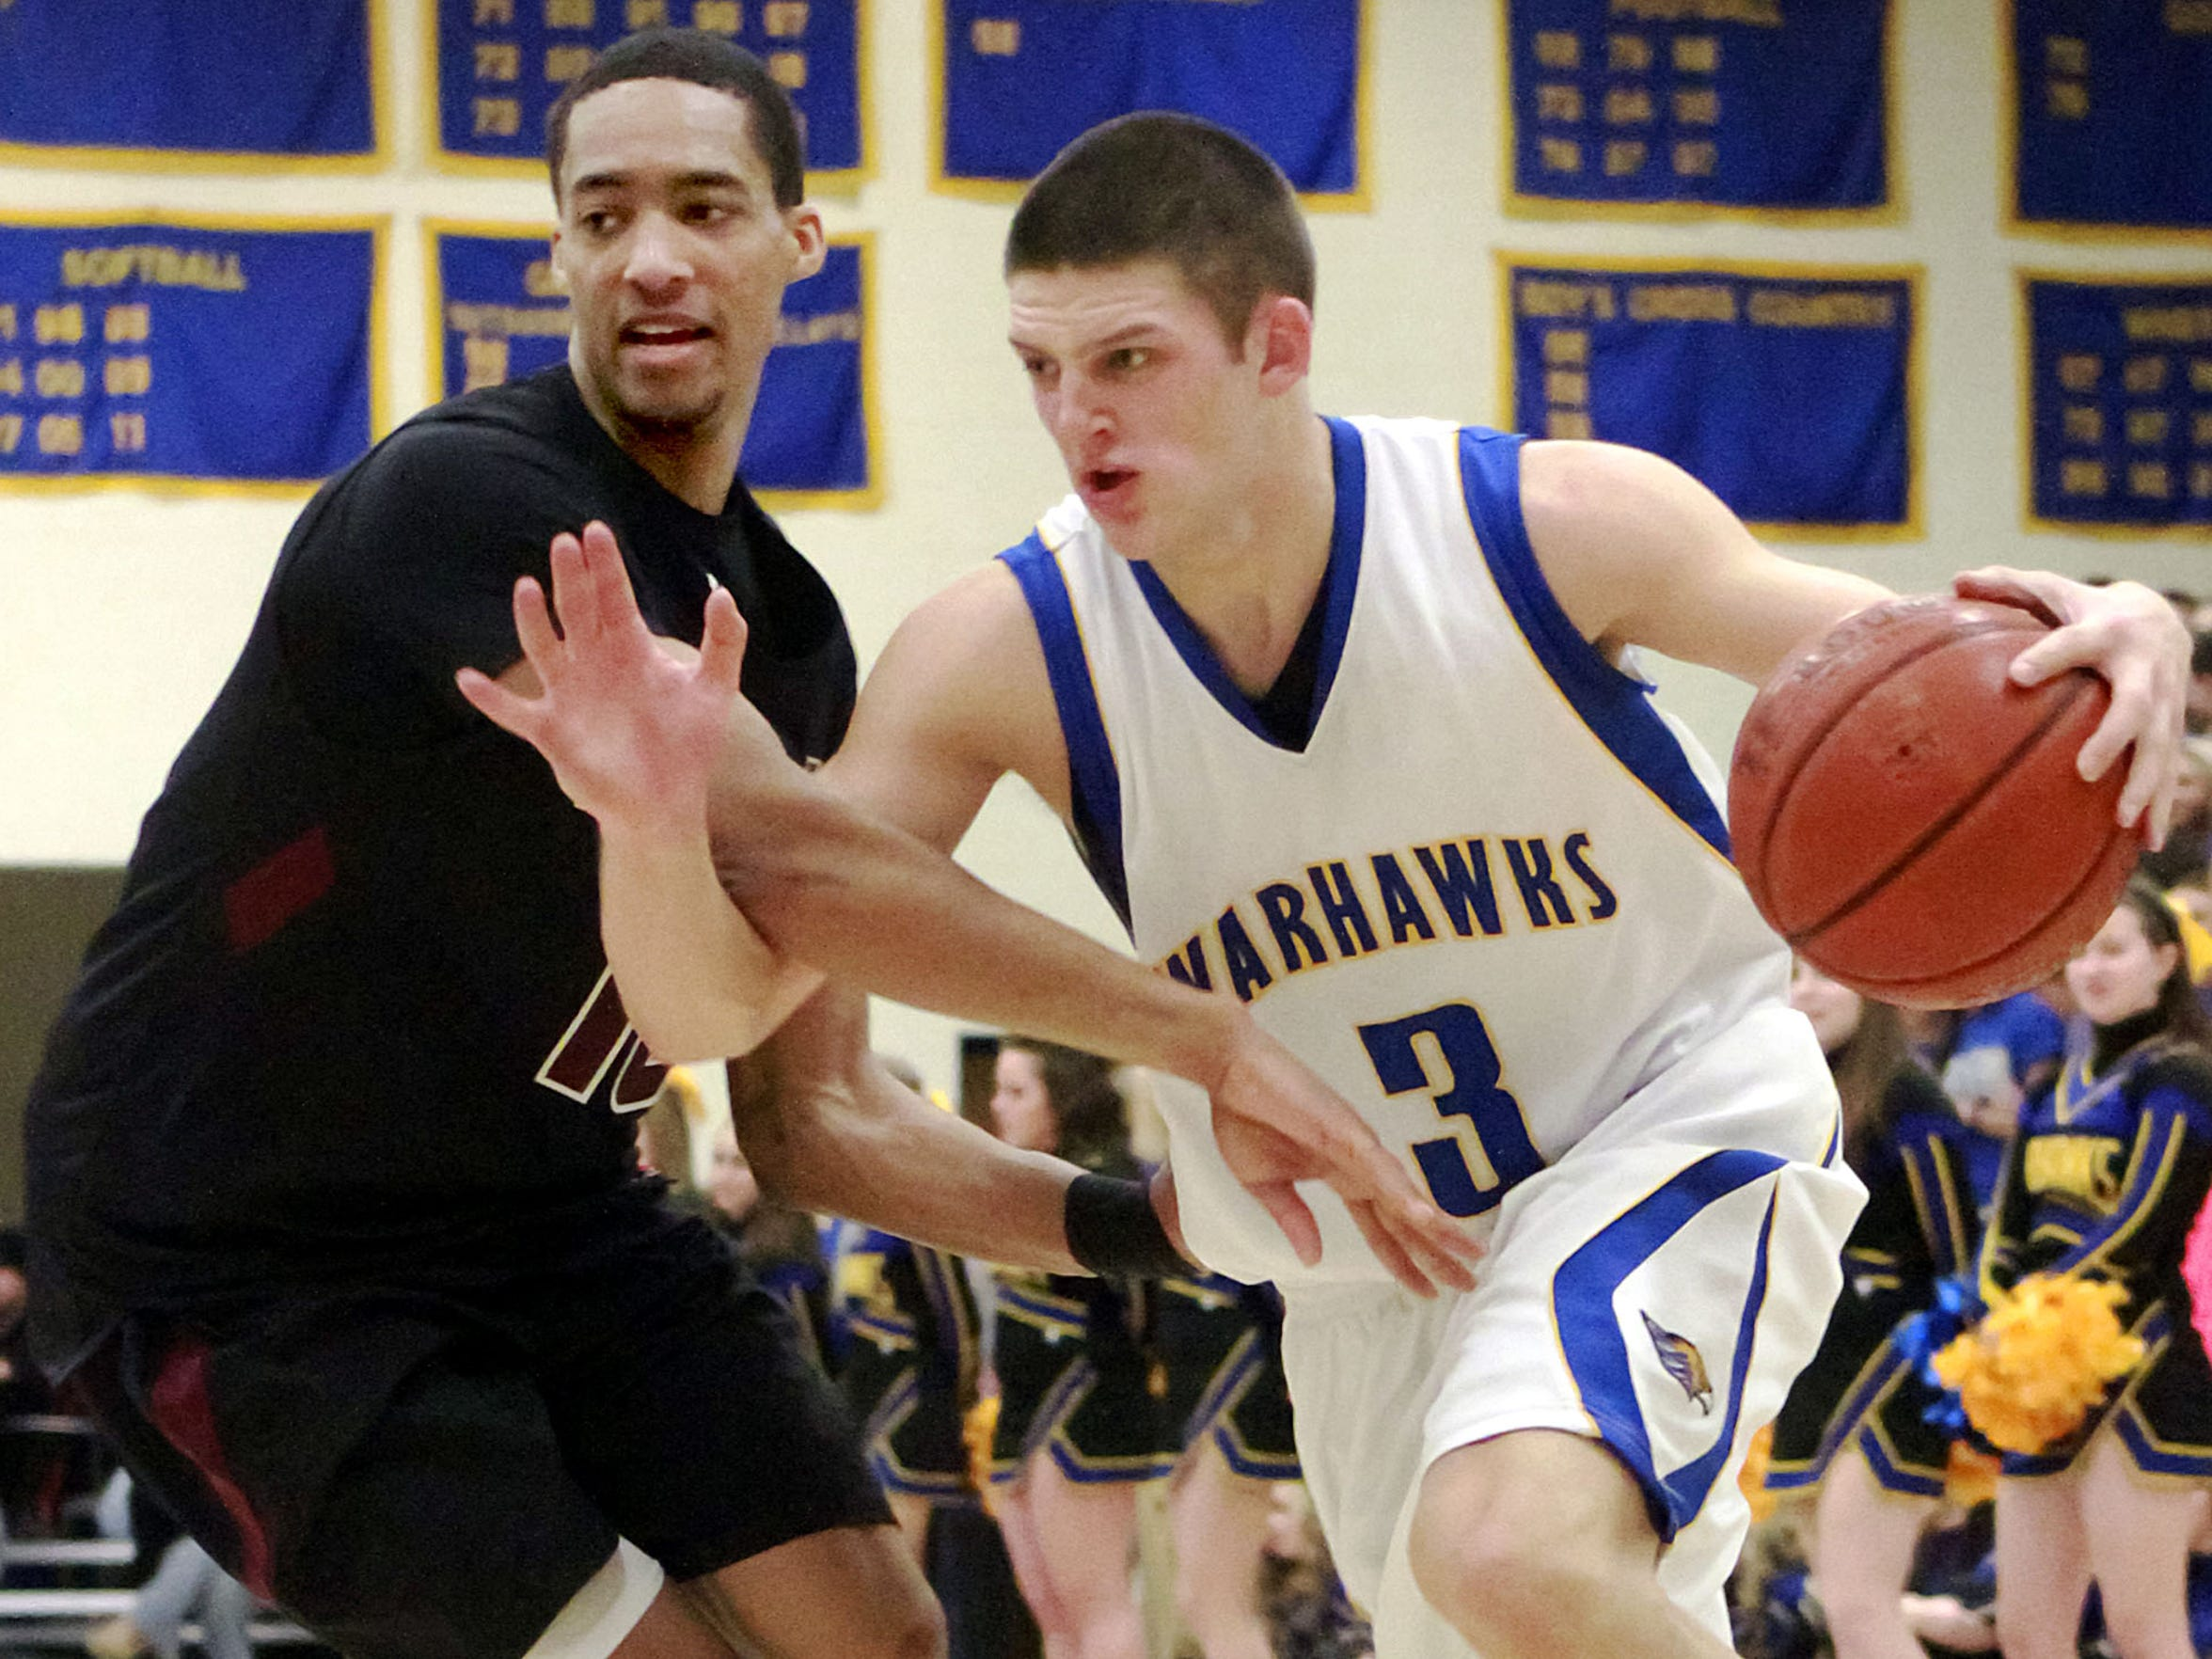 Germantown's Zak Showalter drives toward the basket